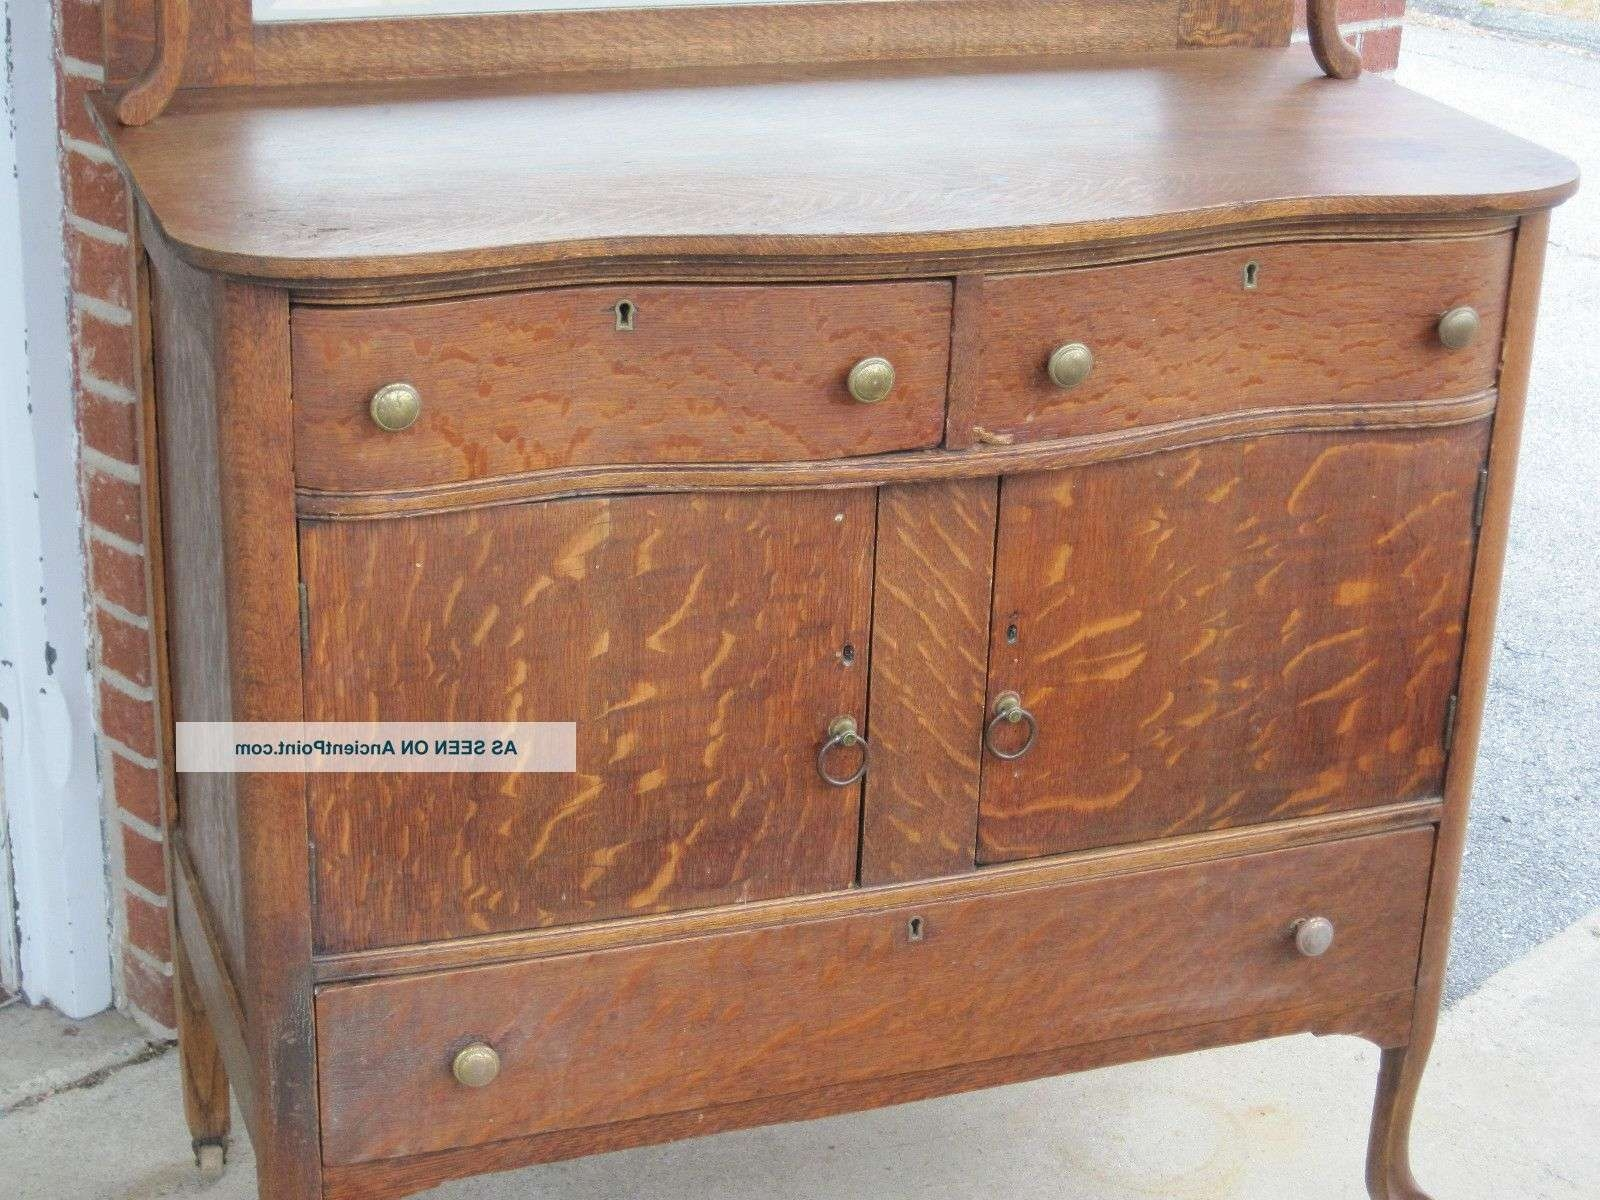 Get Extra Dining Room Storage With Great Buffet Sideboard Idea Inside Vintage Sideboards And Buffets (View 7 of 20)